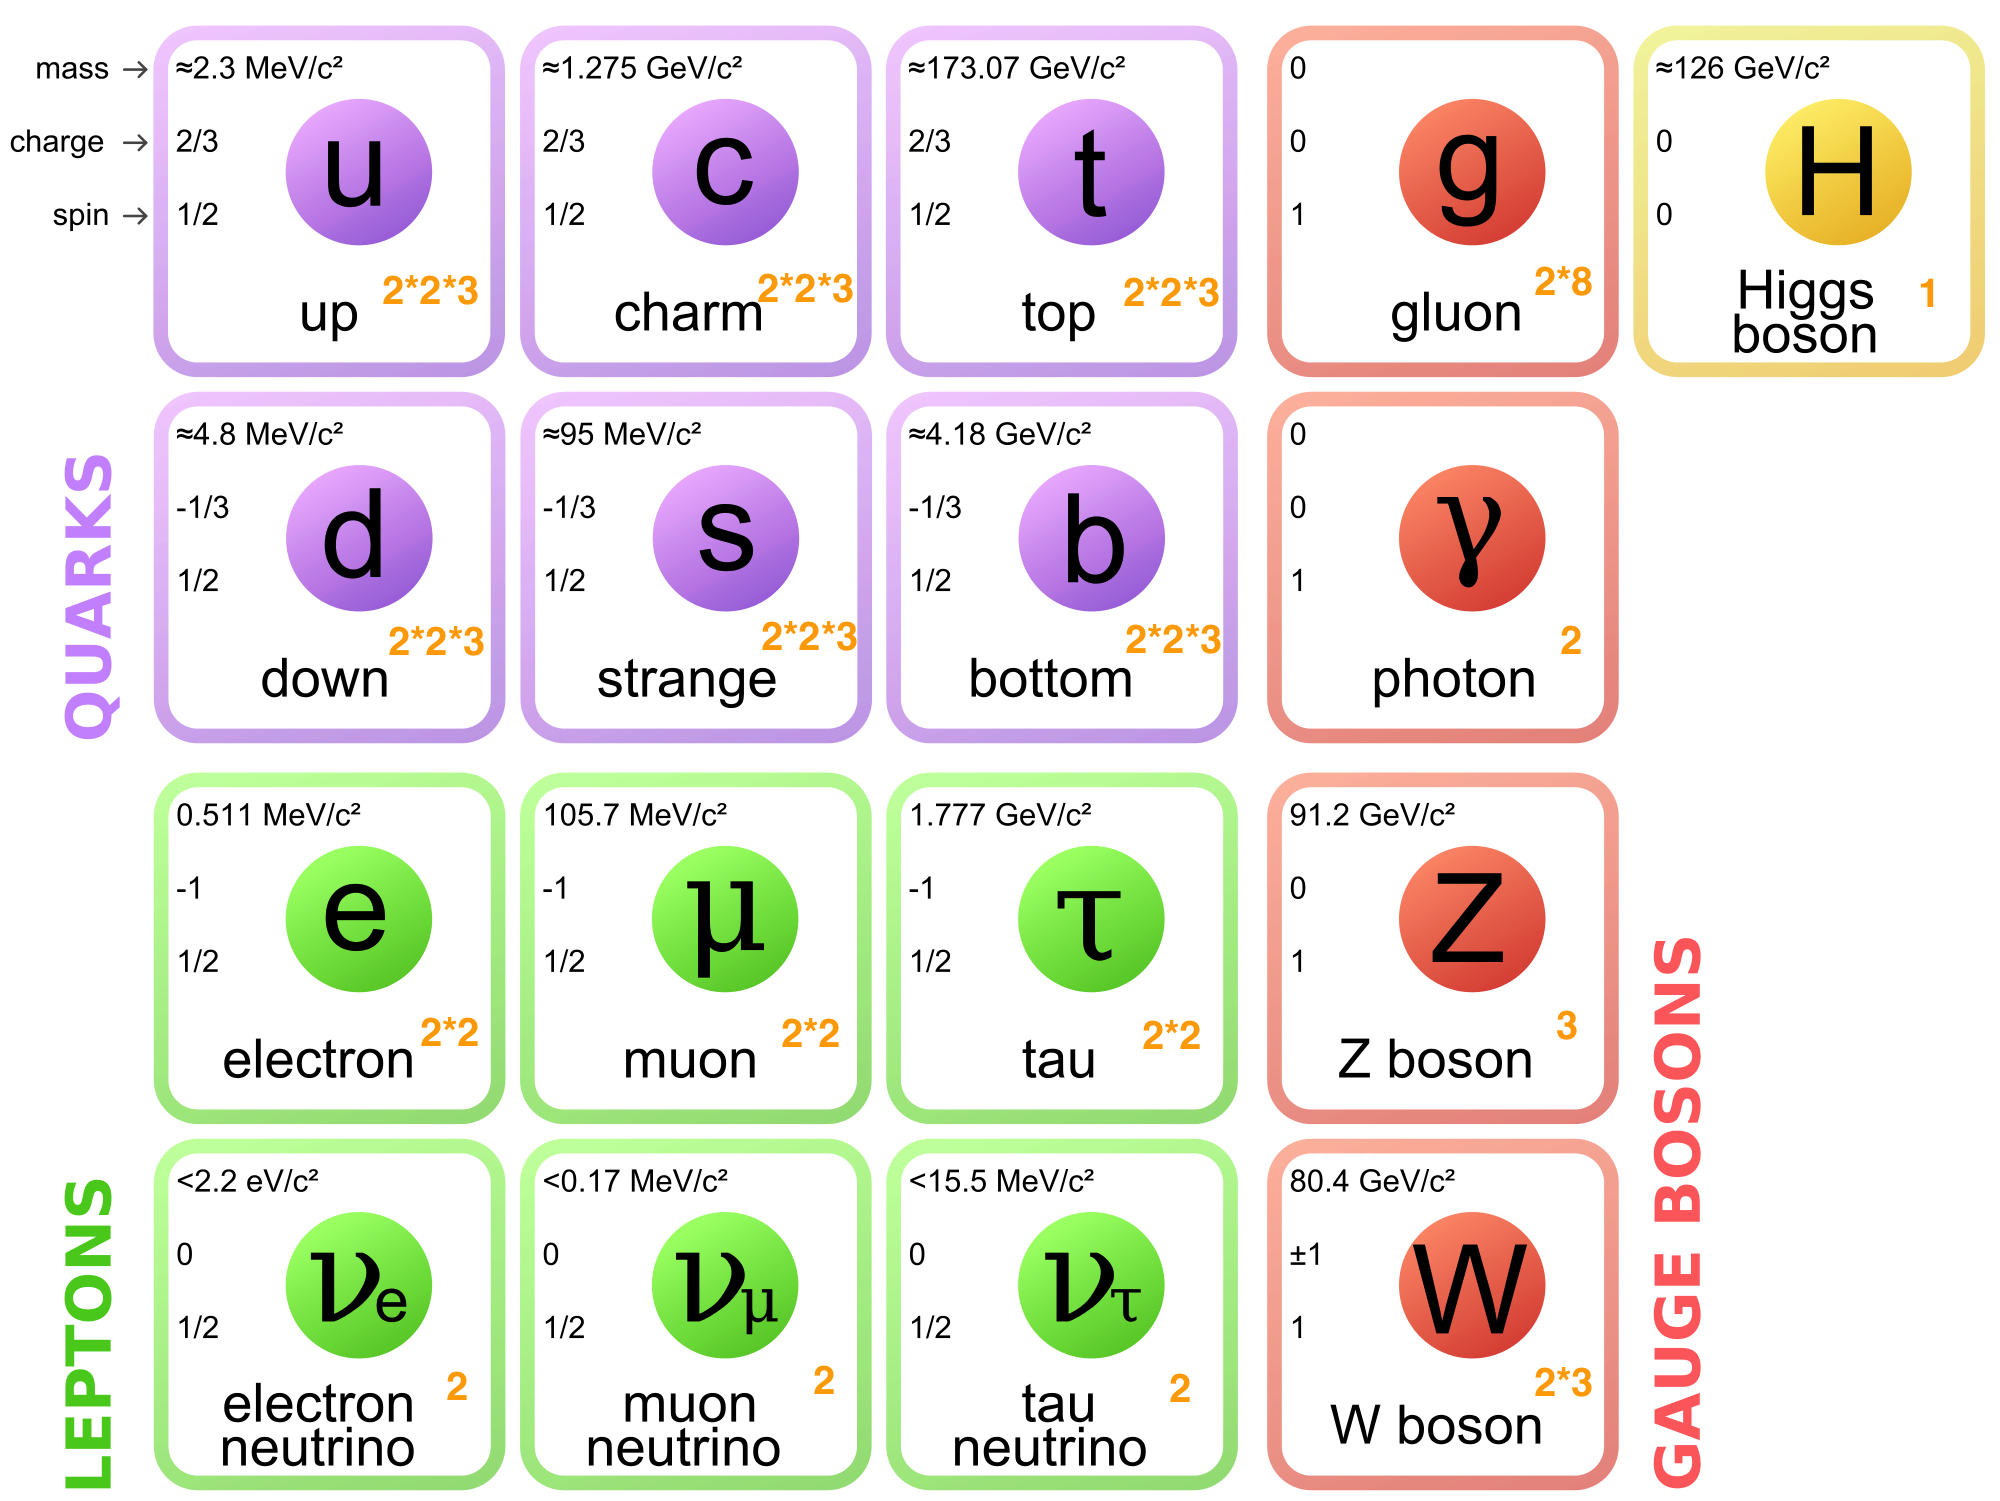 ../_images/Standard_Model_of_Elementary_Particles.png